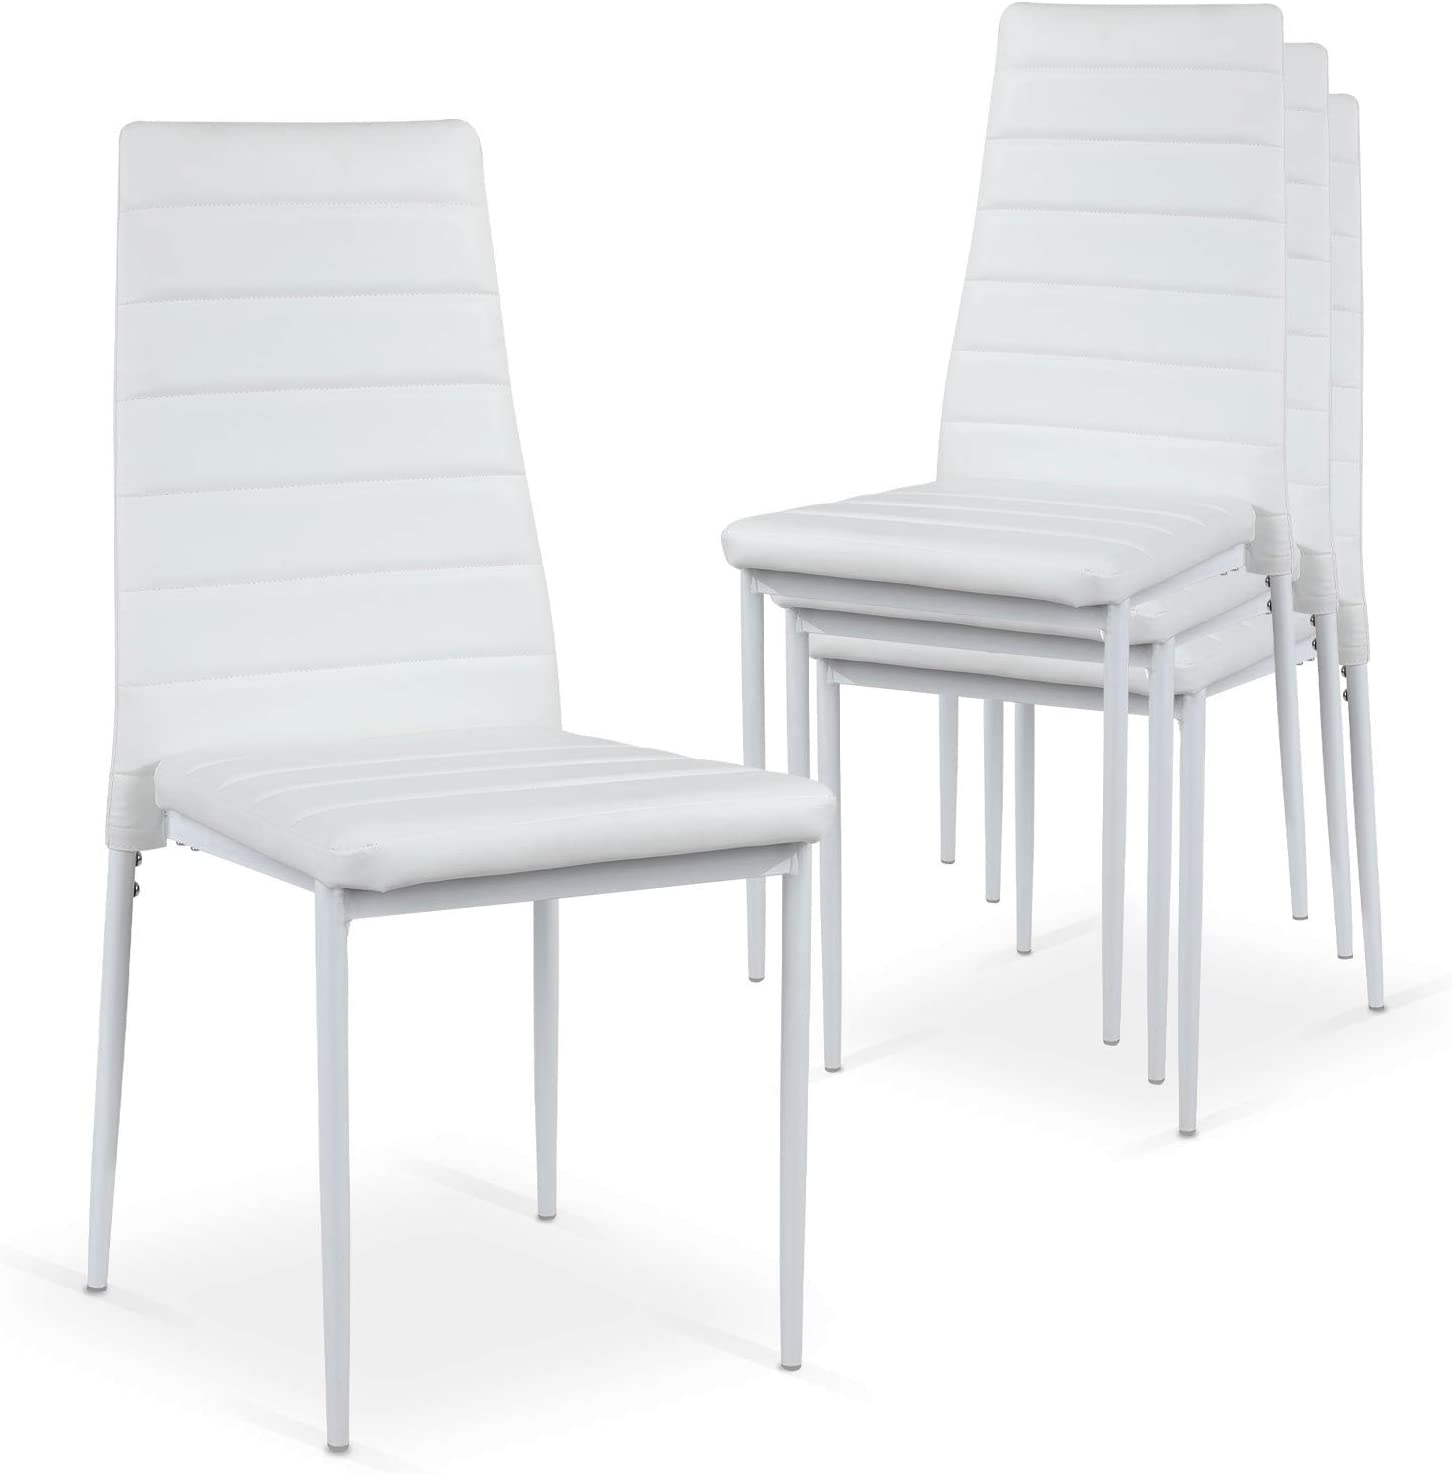 INTENSEDECO Lot de 4 chaises Strip empilables Blanc: Amazon